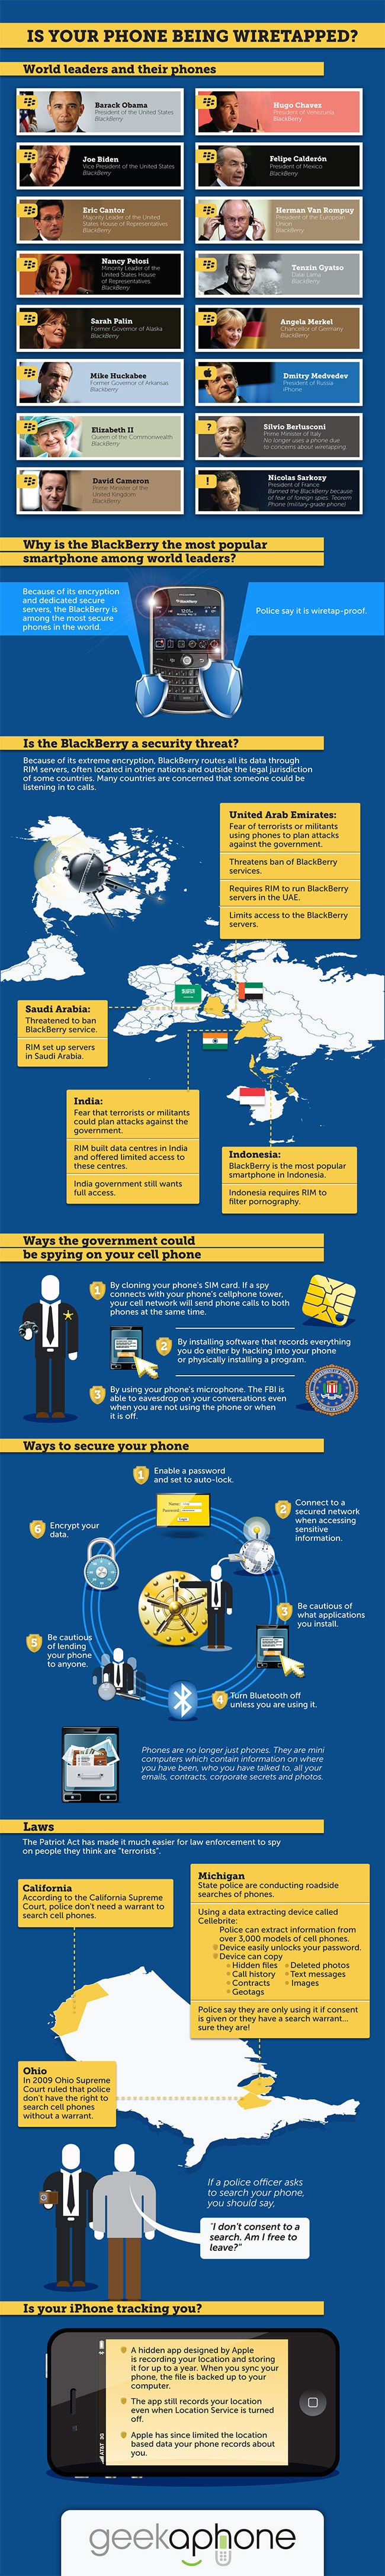 Cell Phone Wiretapping: Mobile Security Explained [Infographic]